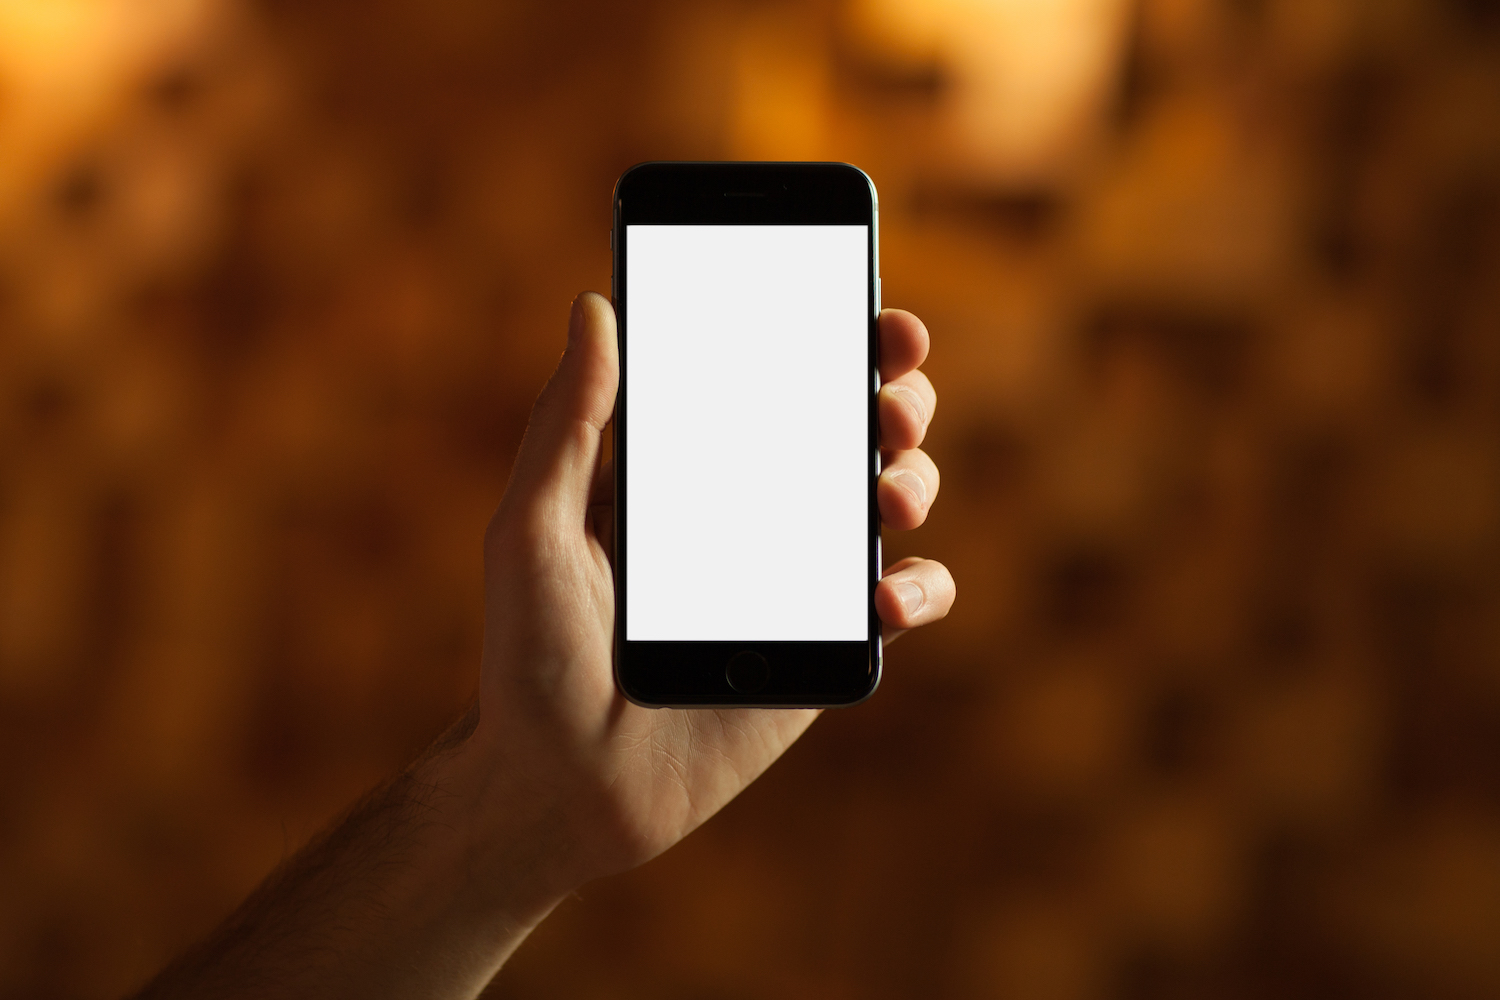 Male hand holding smartphone with blank screen on wood background example image 1